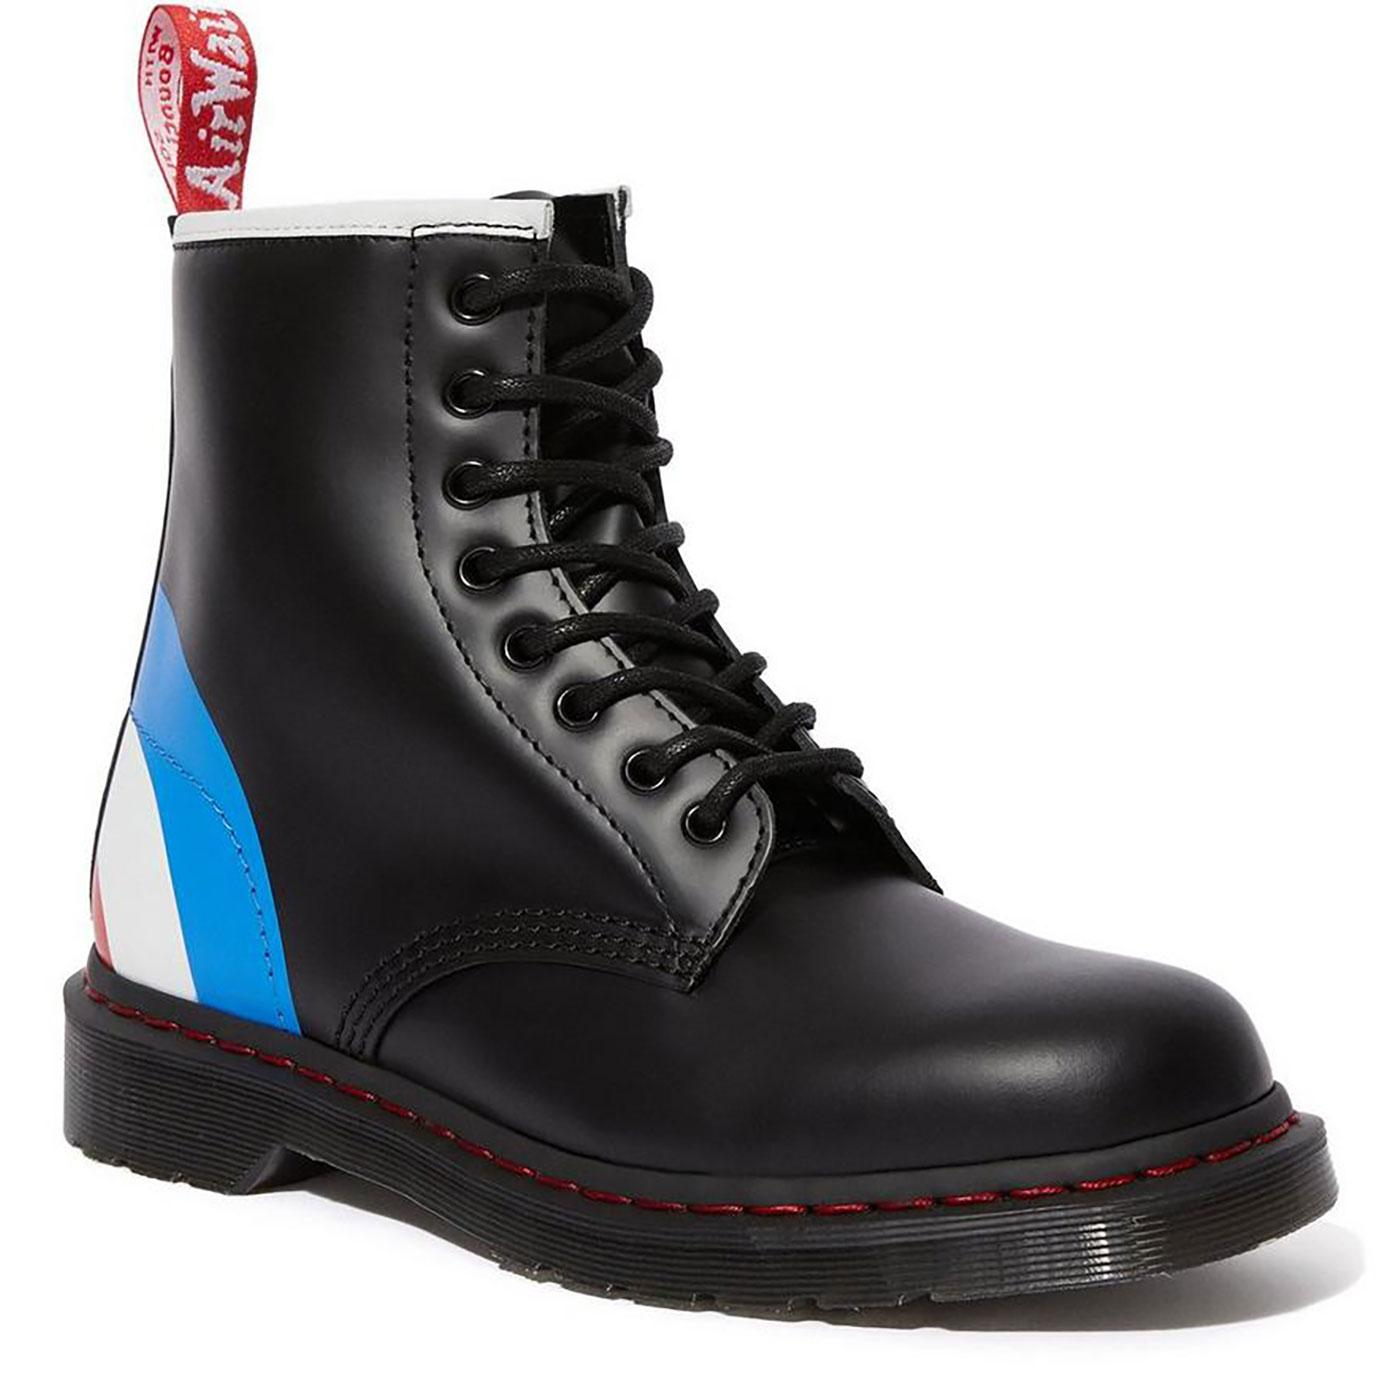 Dr MARTENS X THE WHO Women's 1460 Mod Ankle Boots